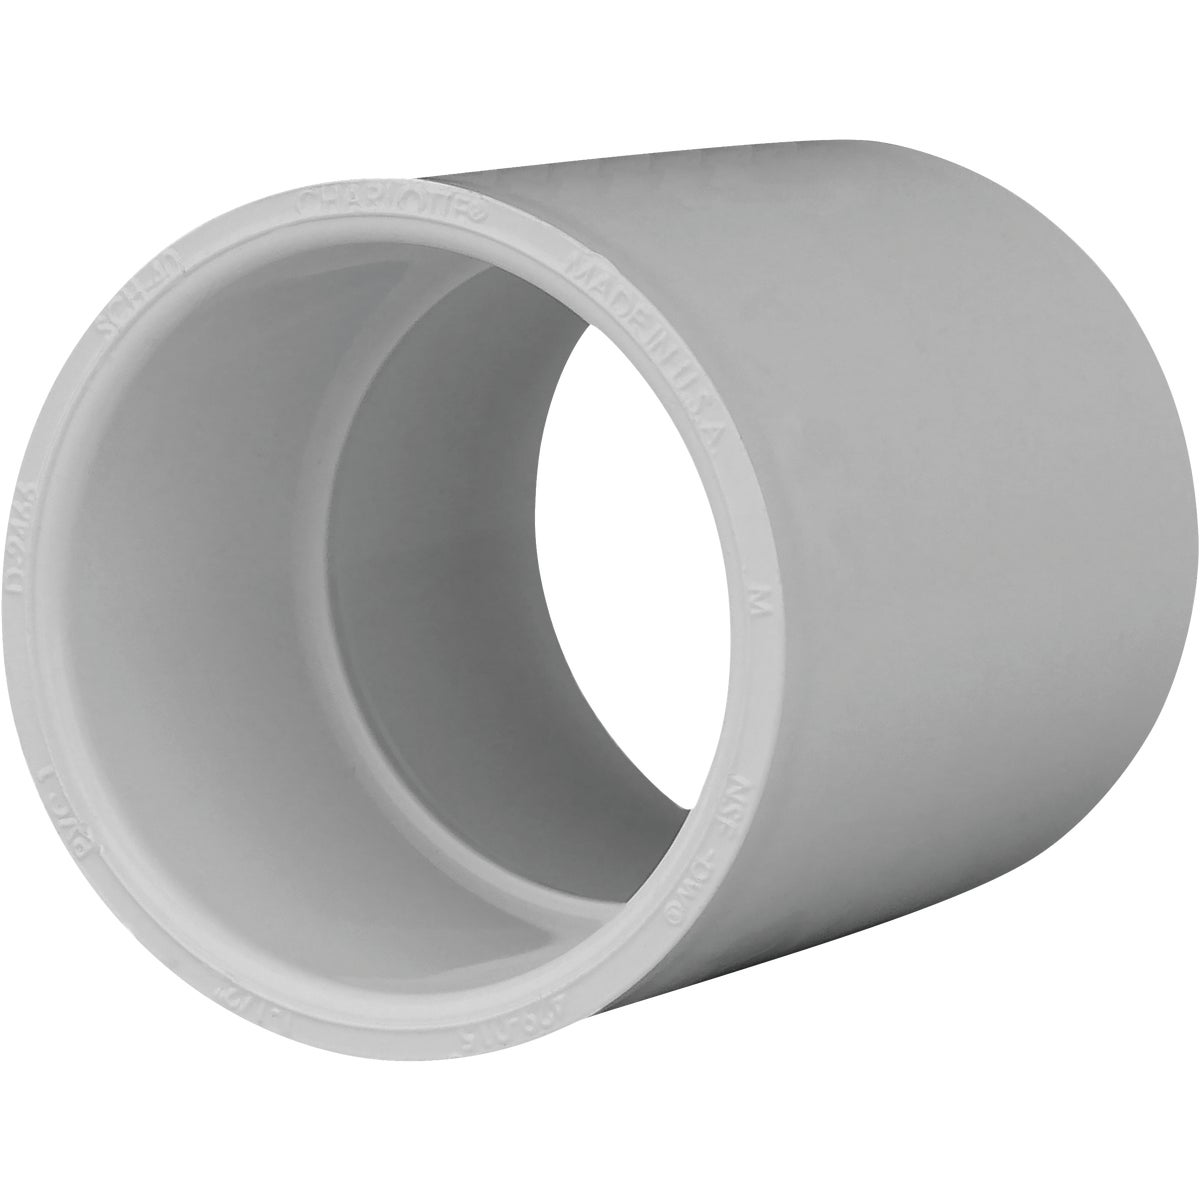 "1-1/2""PVC SCH40 COUPLING - 30115 by Genova Inc"